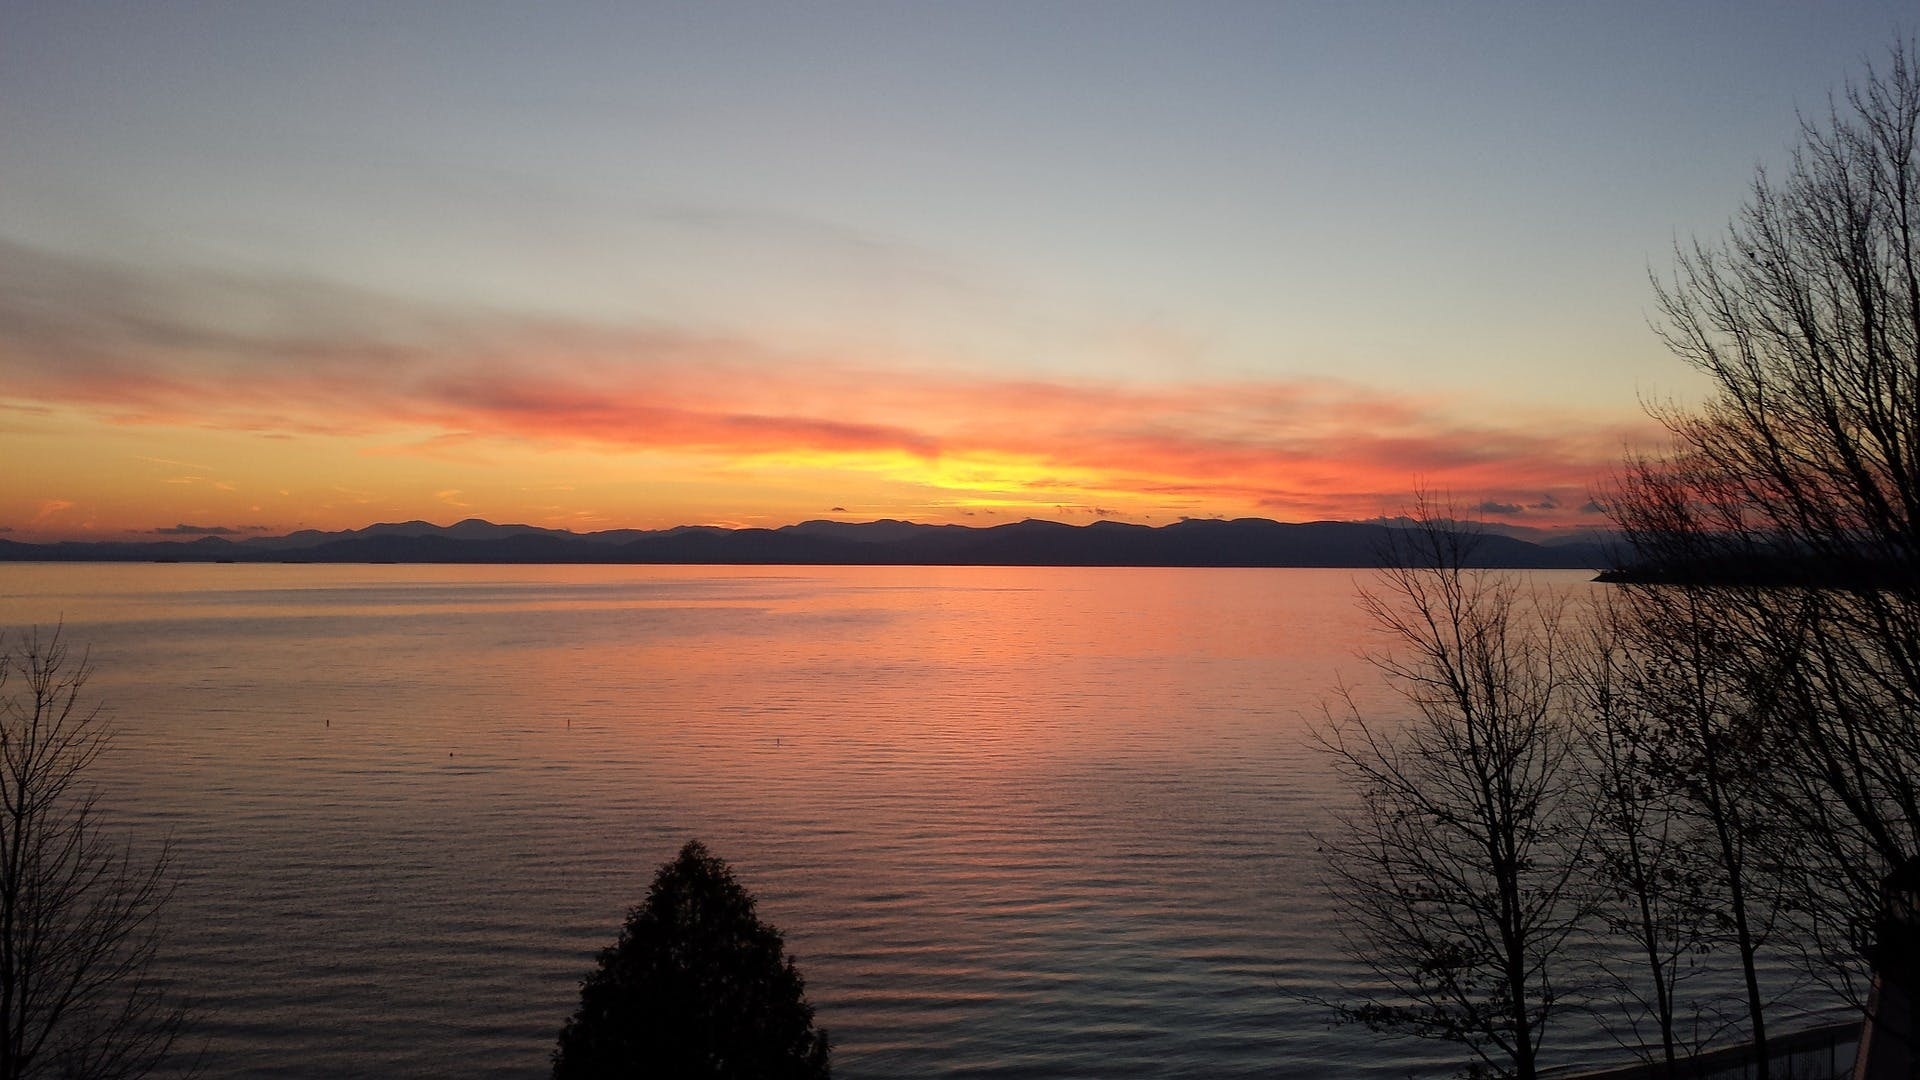 lake champlain with the sun setting over the hills in the background